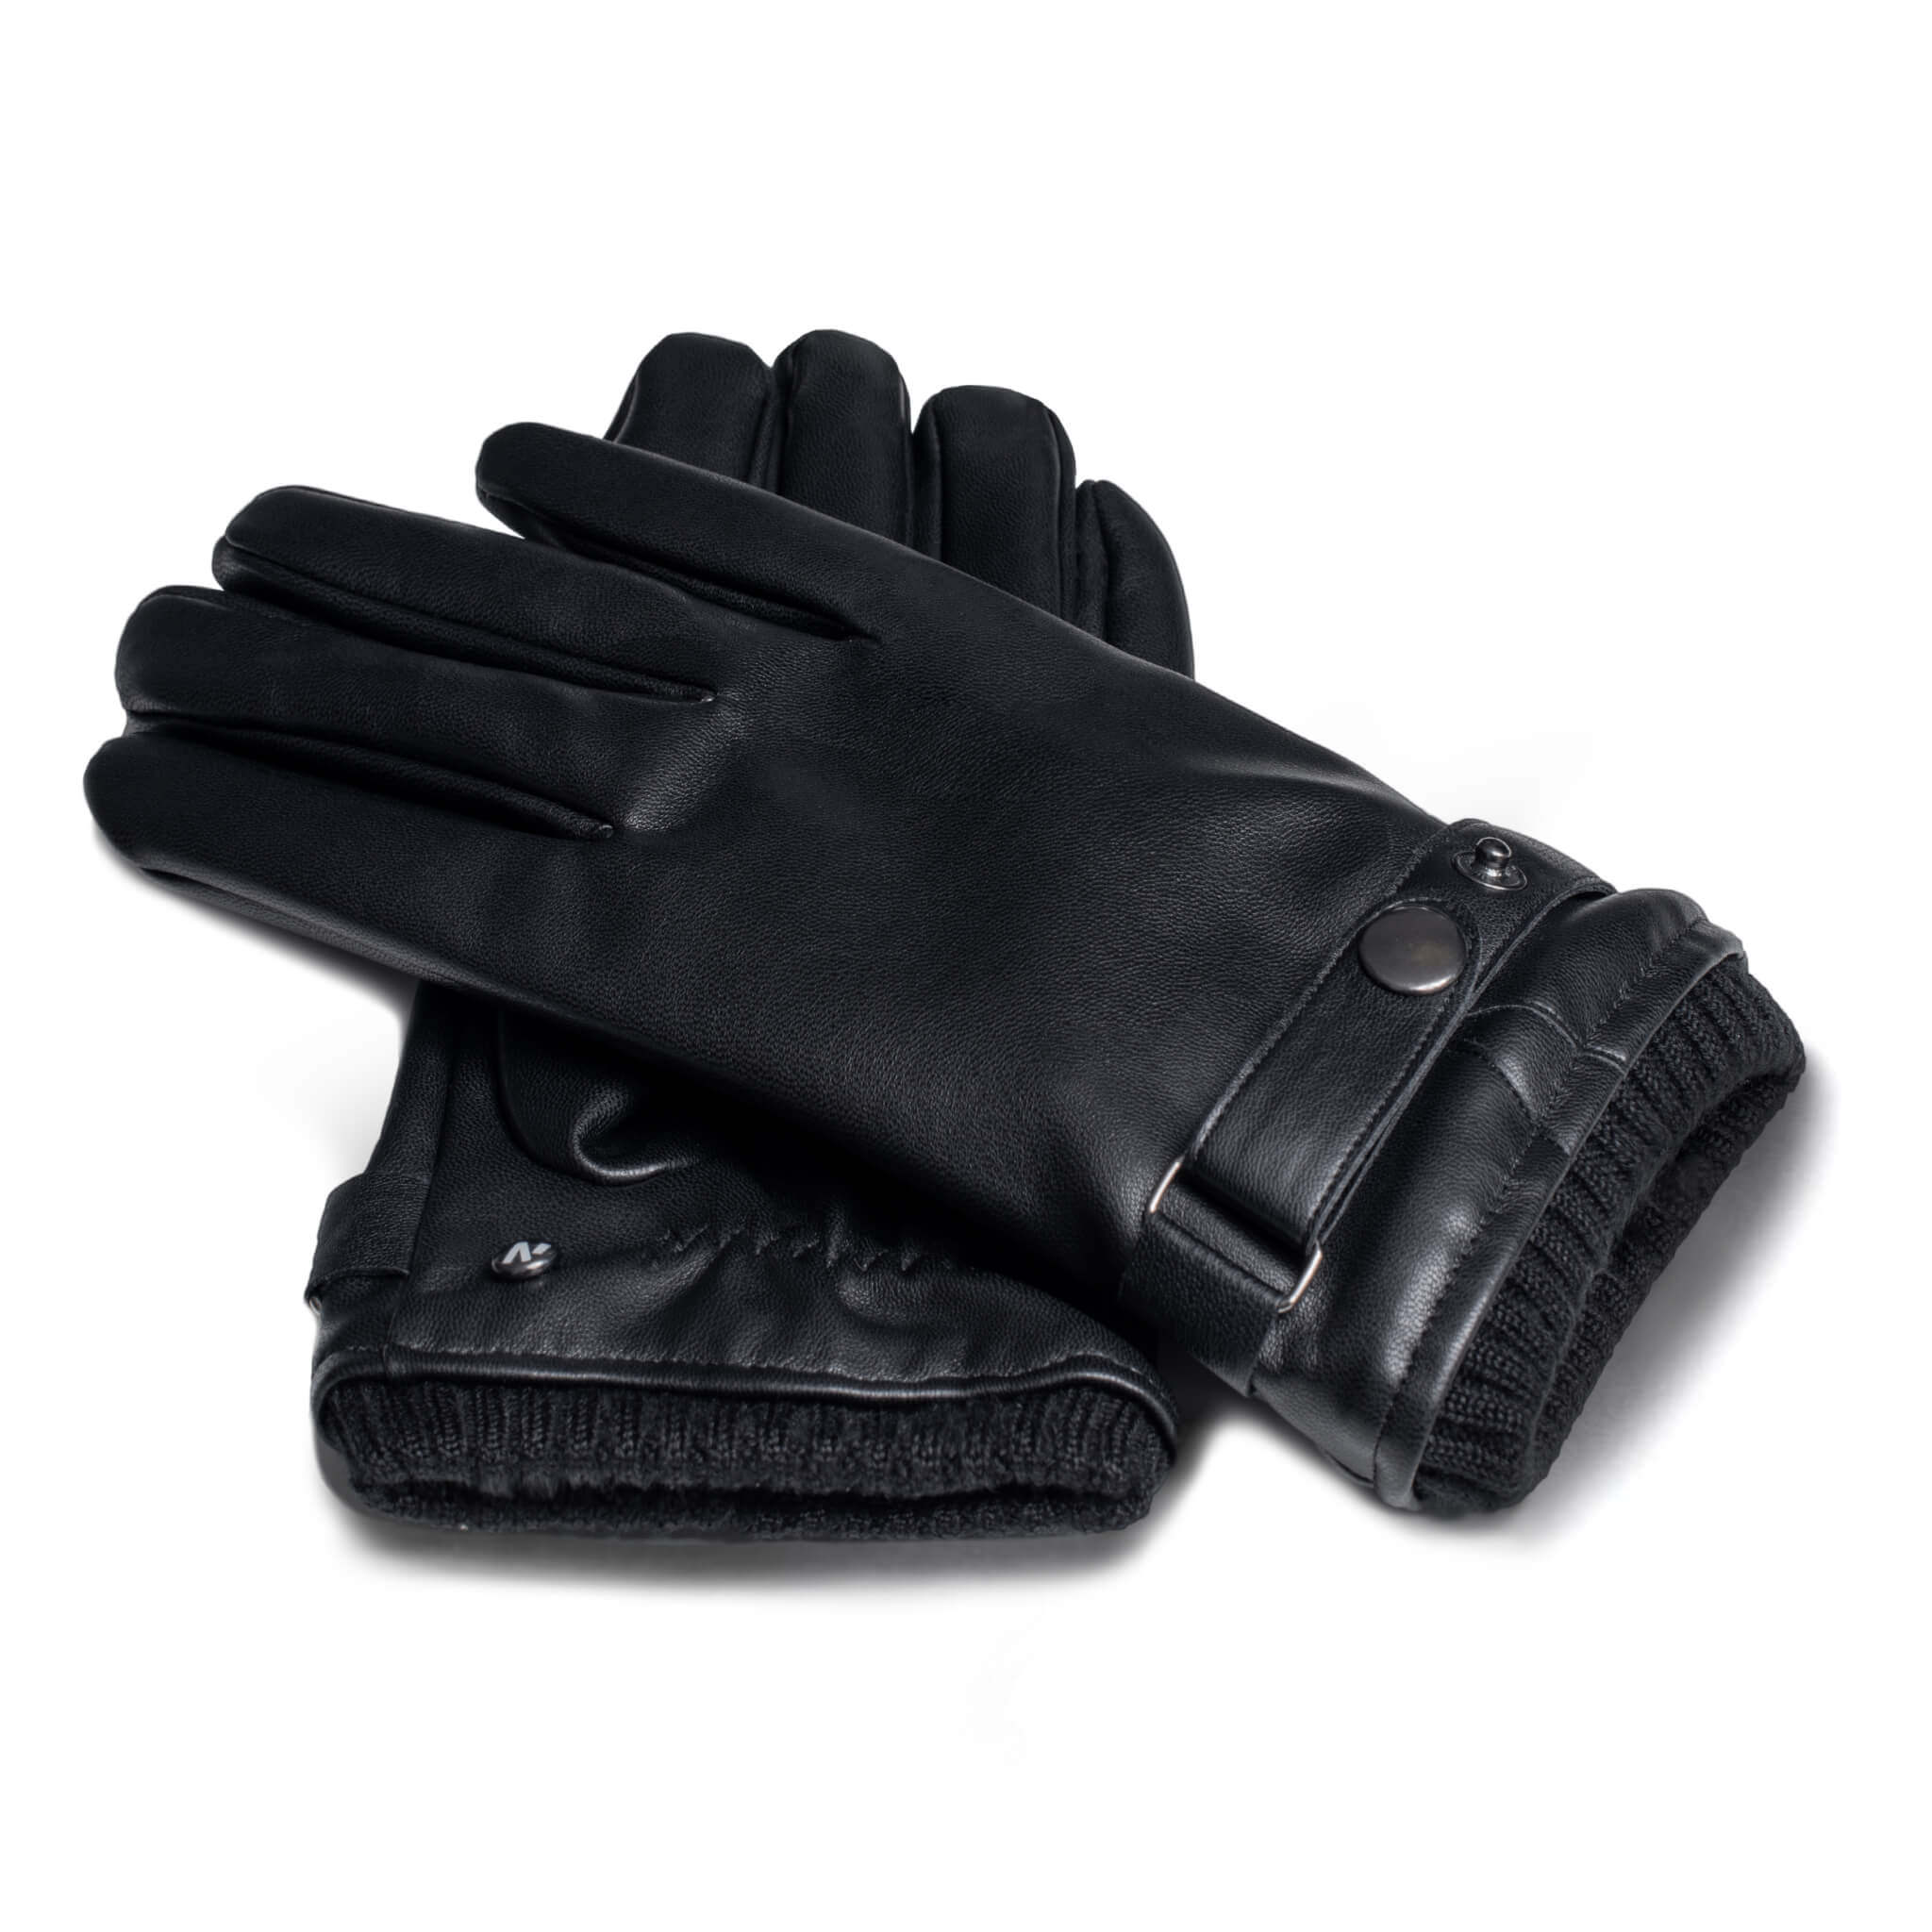 Black gloves with lining made of eco leather with touchscreen technology